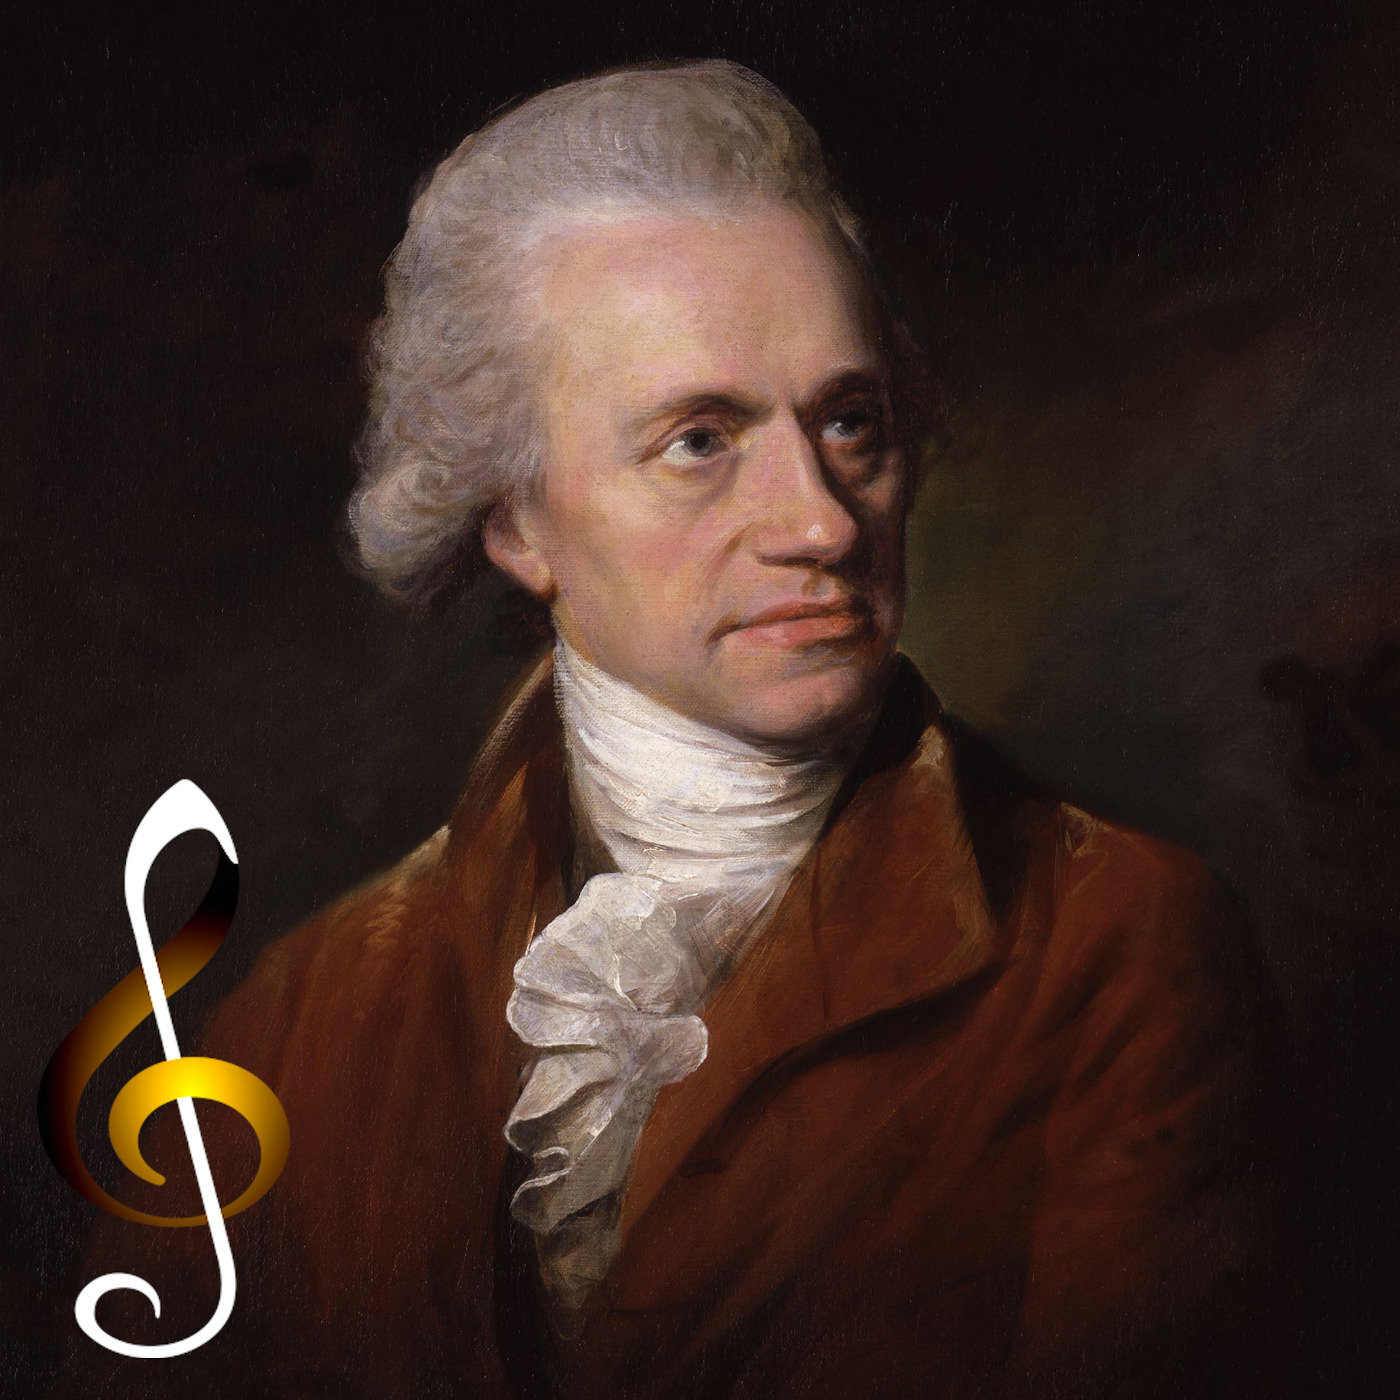 Hors série : William Frederick Herschel